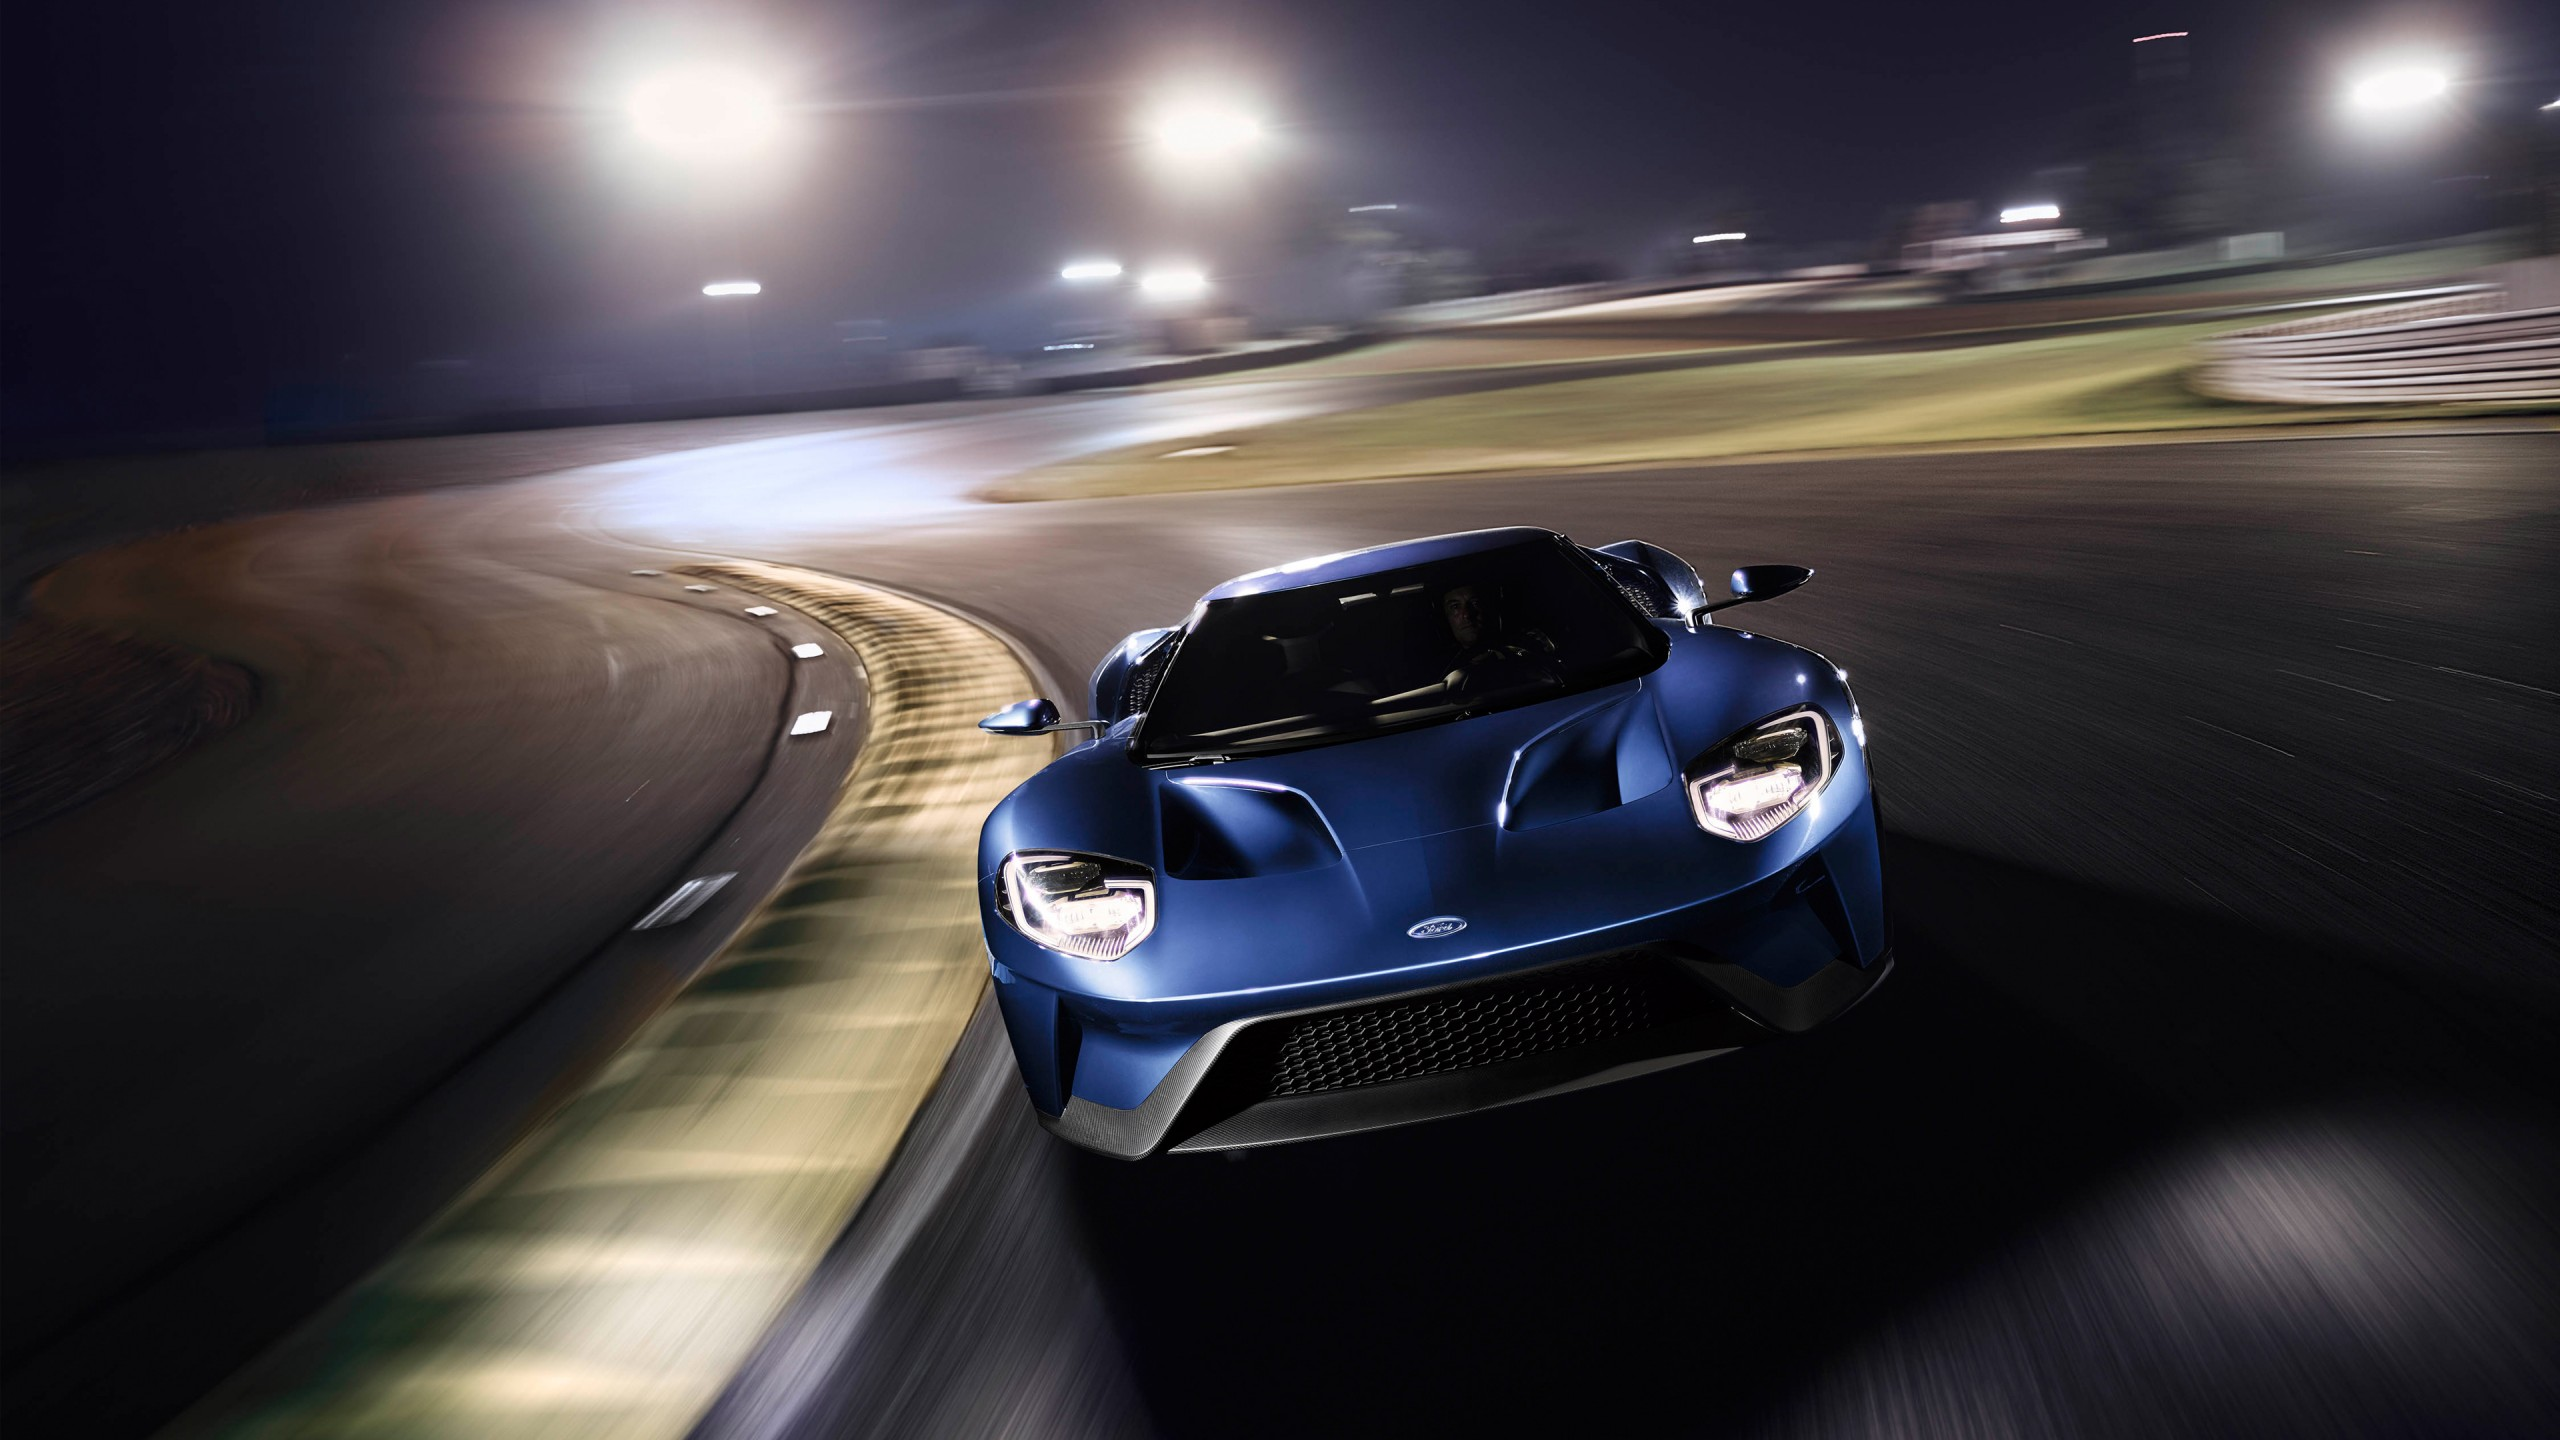 2017 ford gt hd - photo #11